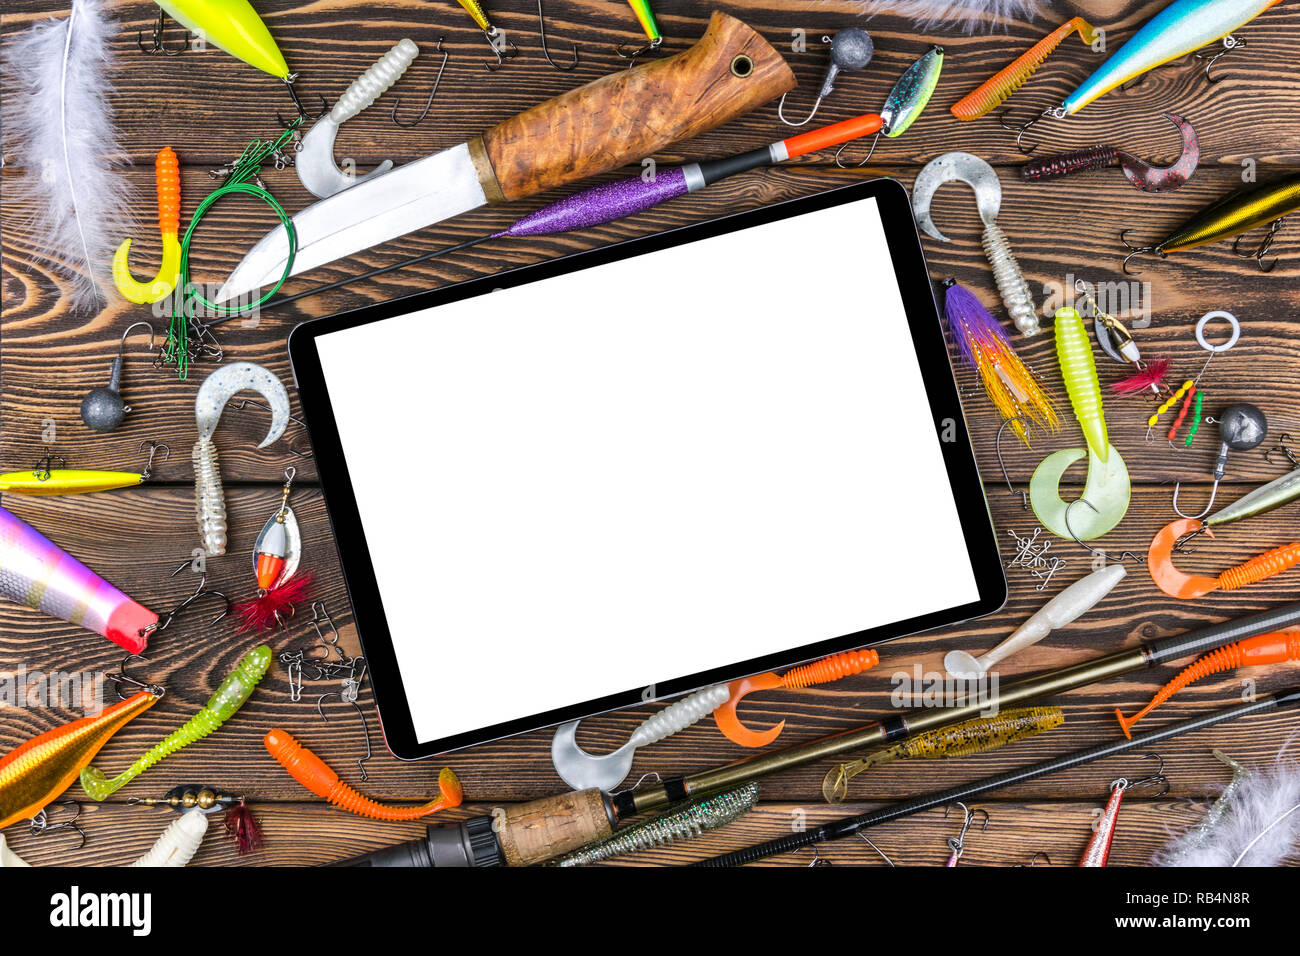 Fishing rod, tackles and fishing baits, reel on wooden board background with tablet computer isolated white screen, empty space for text - Stock Image